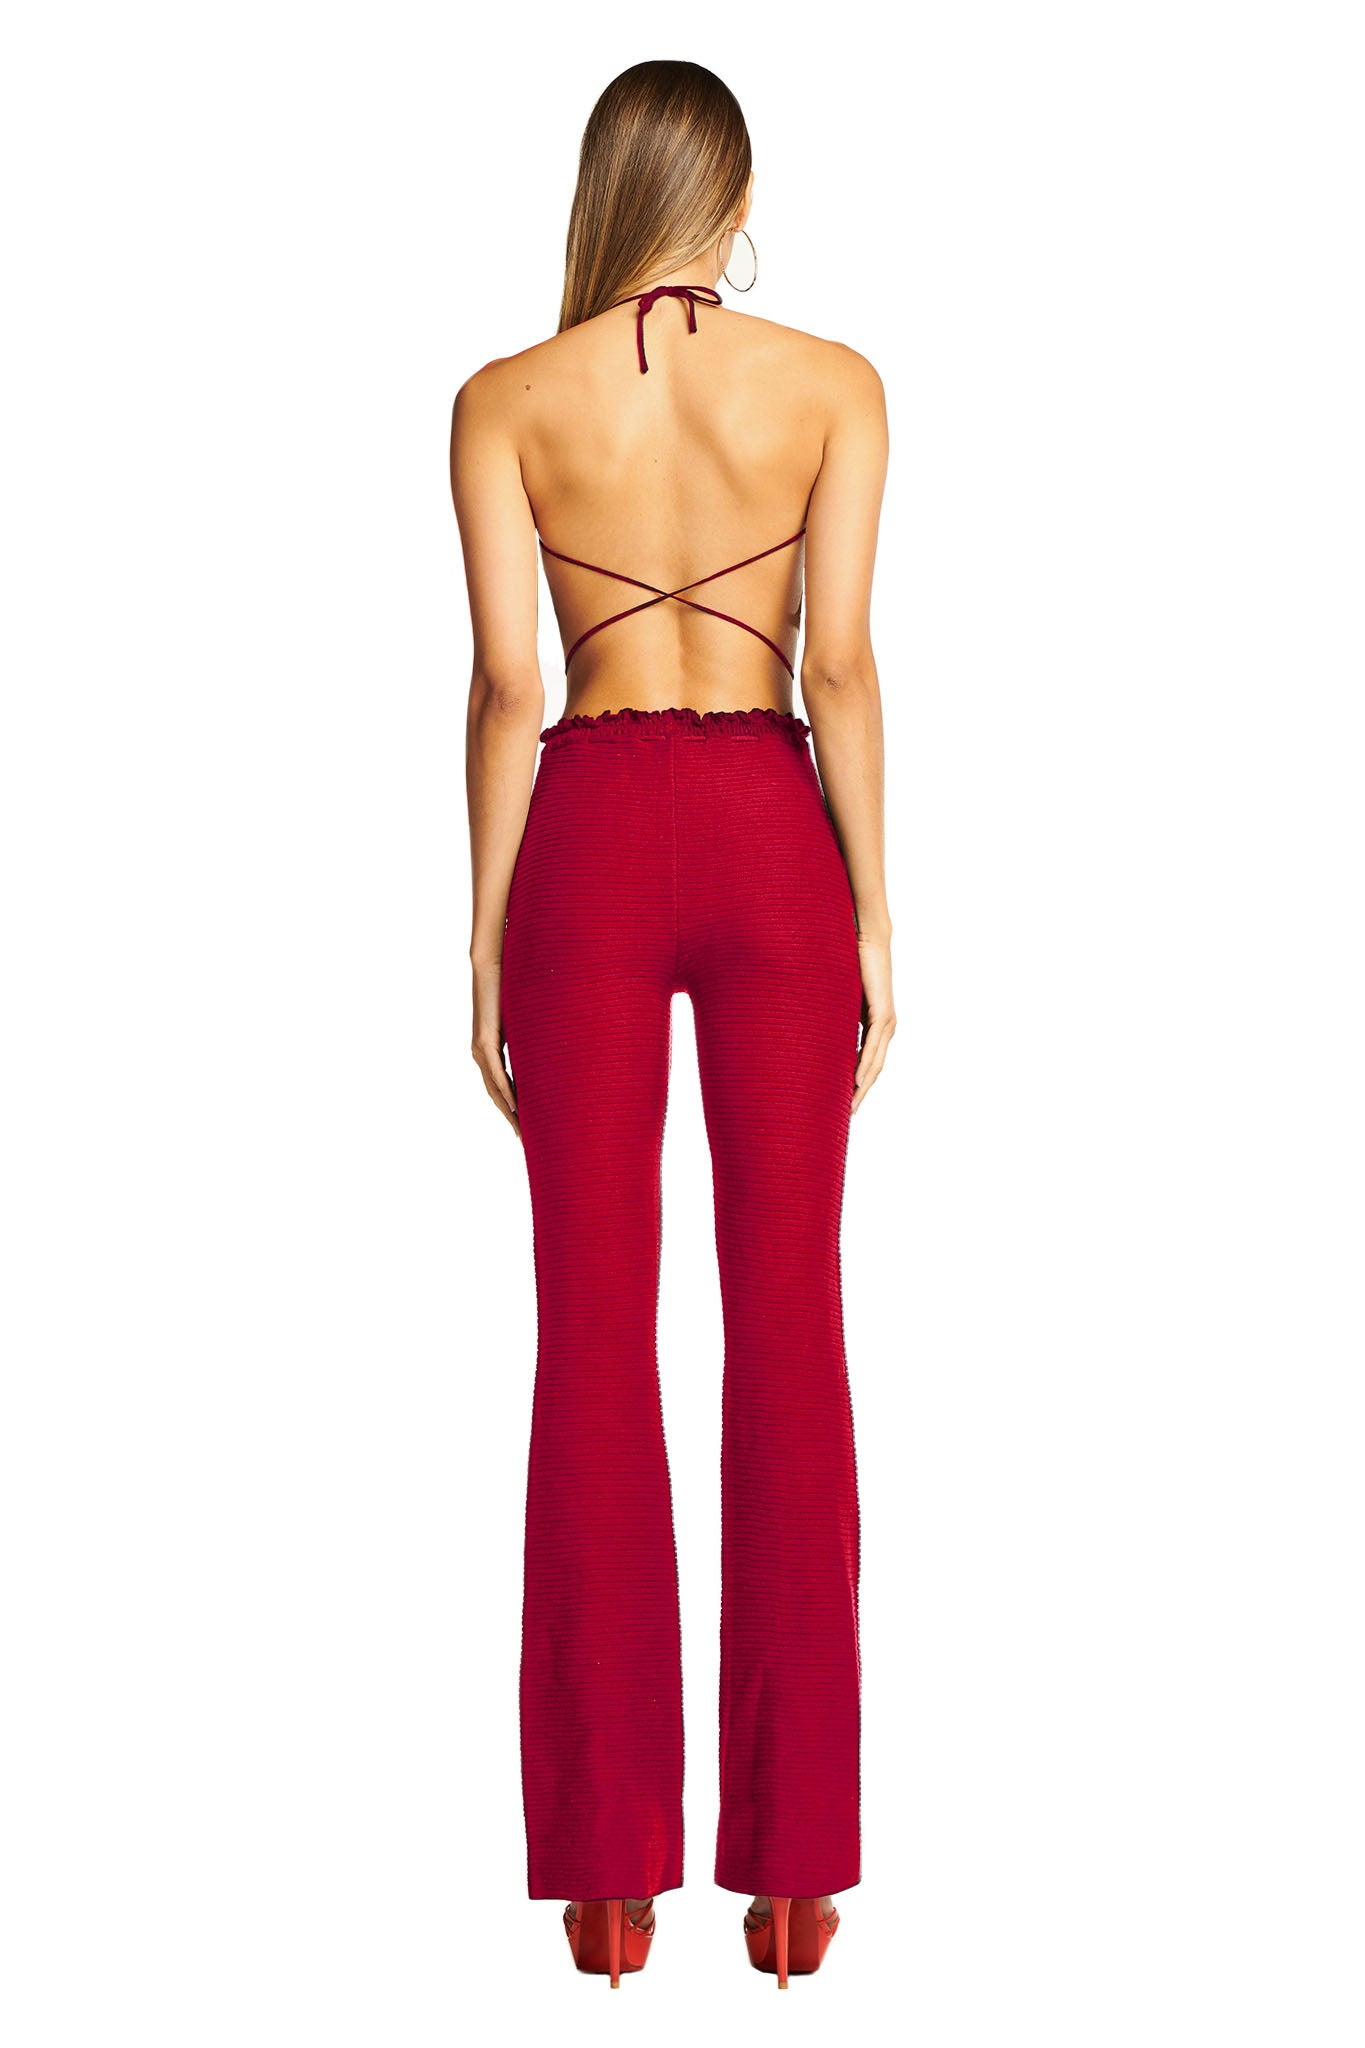 SAVANNAH CROP - RED